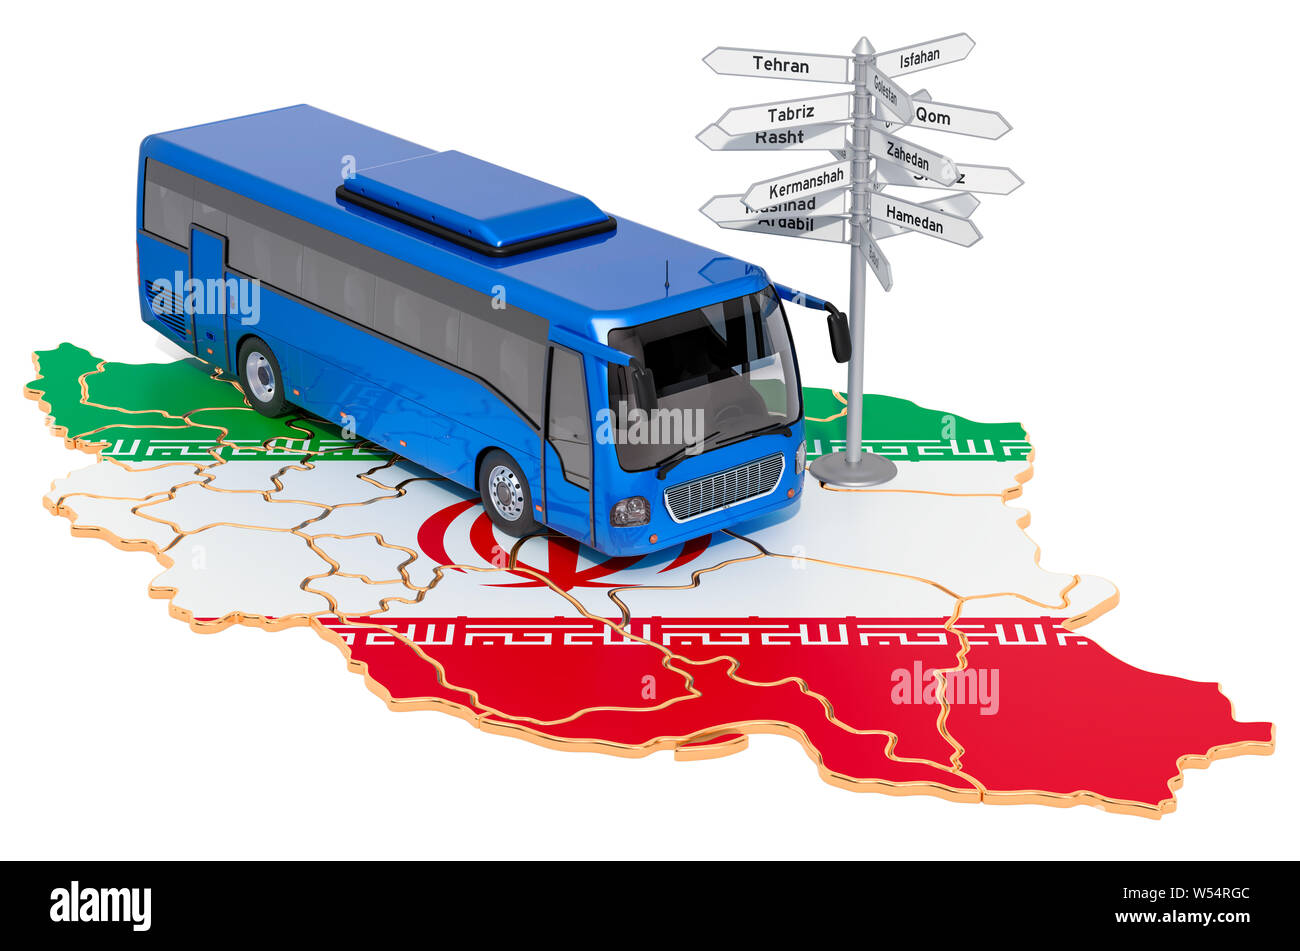 Iran Bus Tours concept. 3D rendering isolated on white background Stock Photo